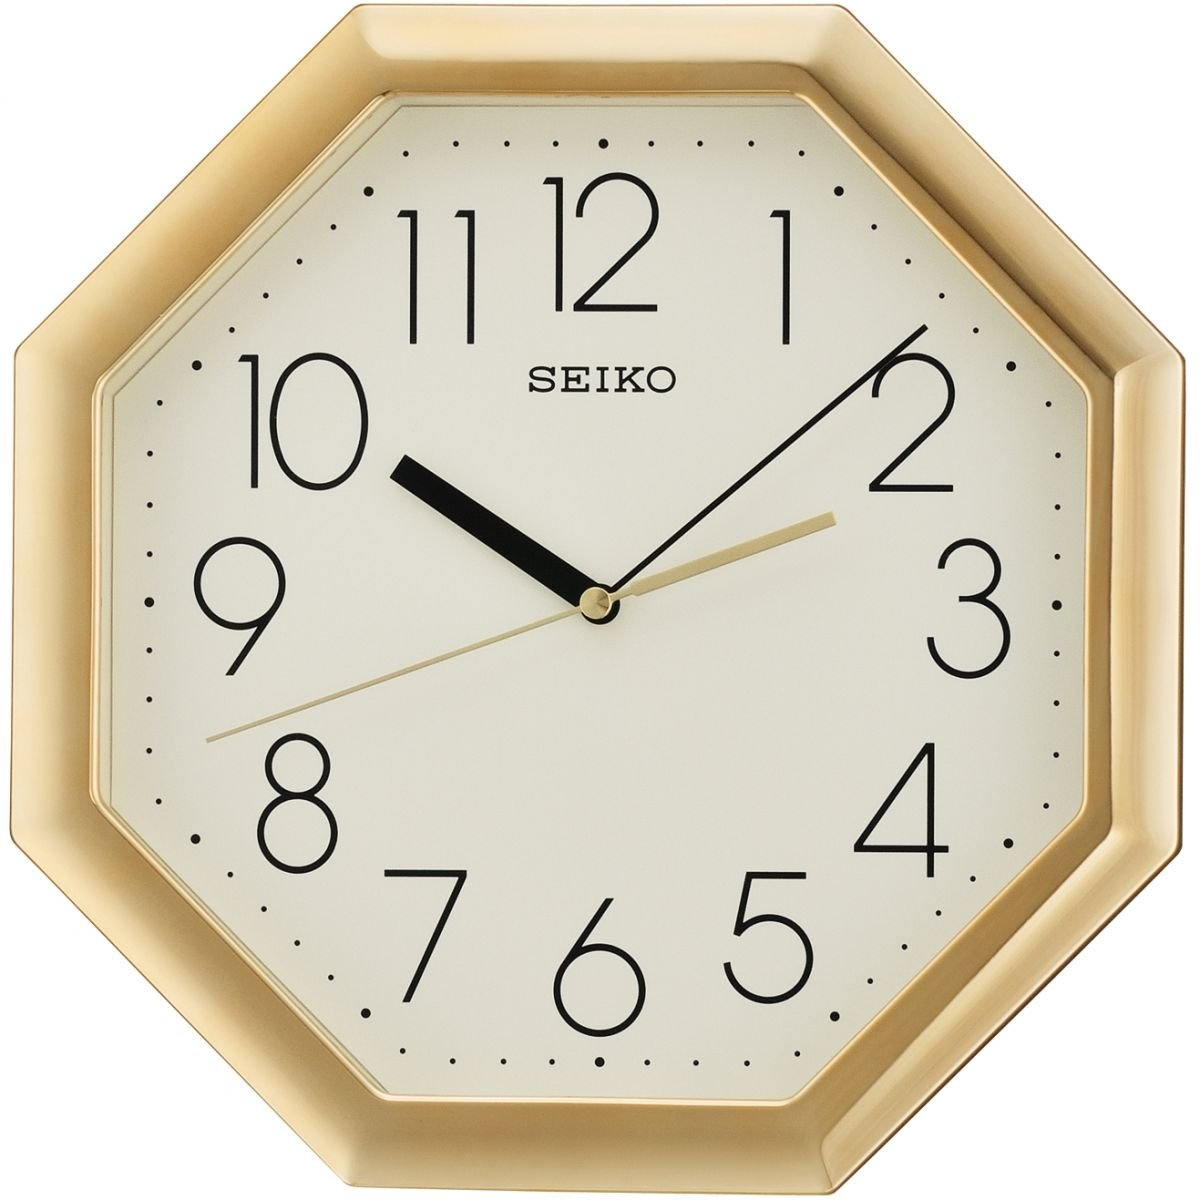 Seiko Octagon Wall Clock - Gold